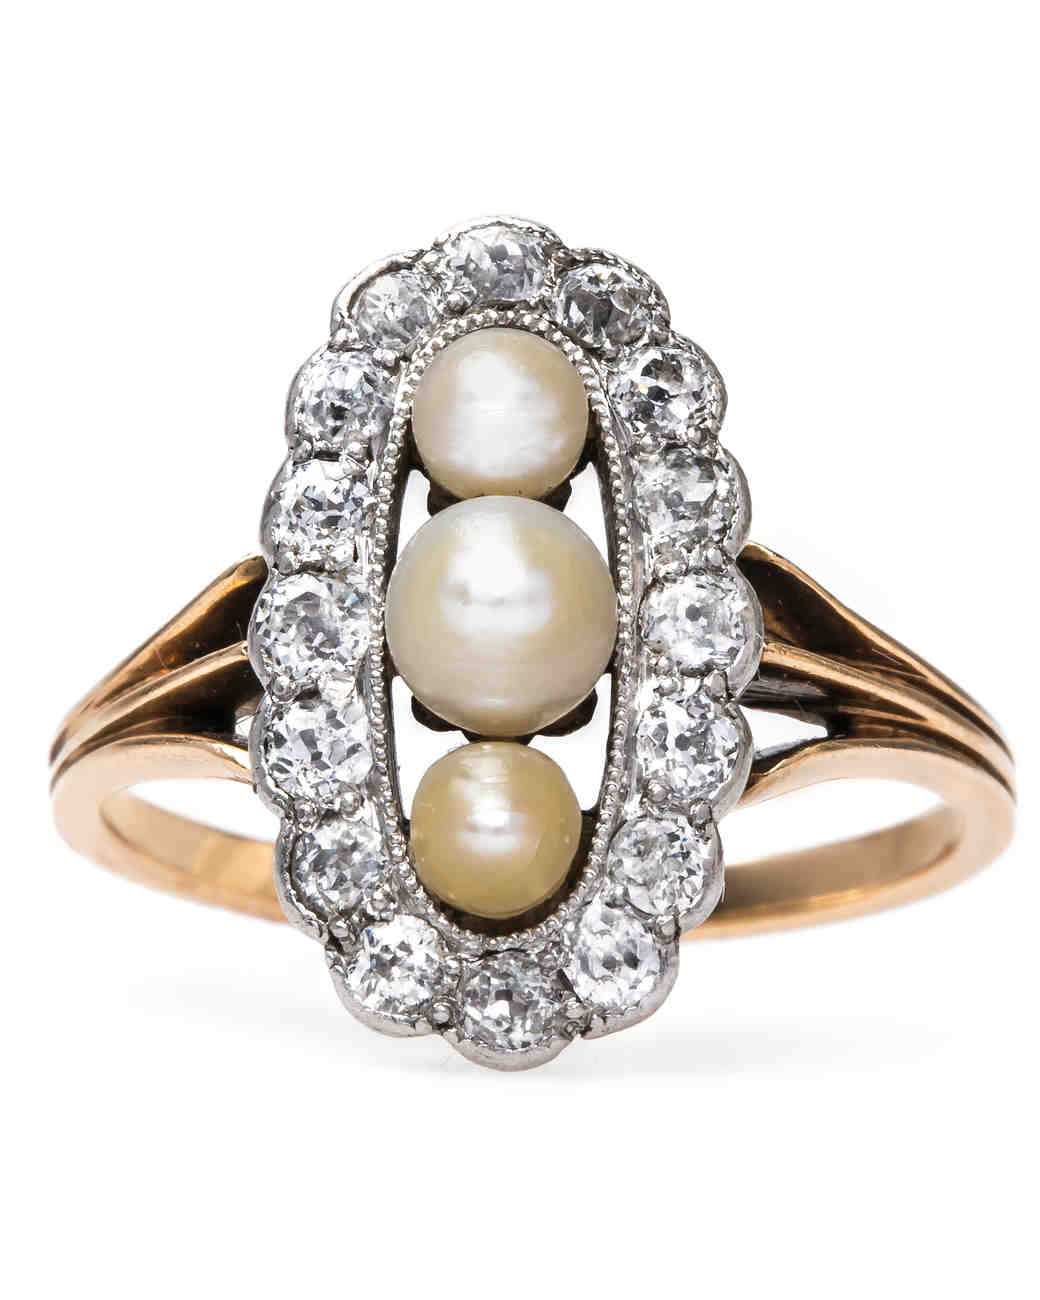 brides early rings engagement three deco styles gallery diamond and ring stone carat pearl pearls art cultured